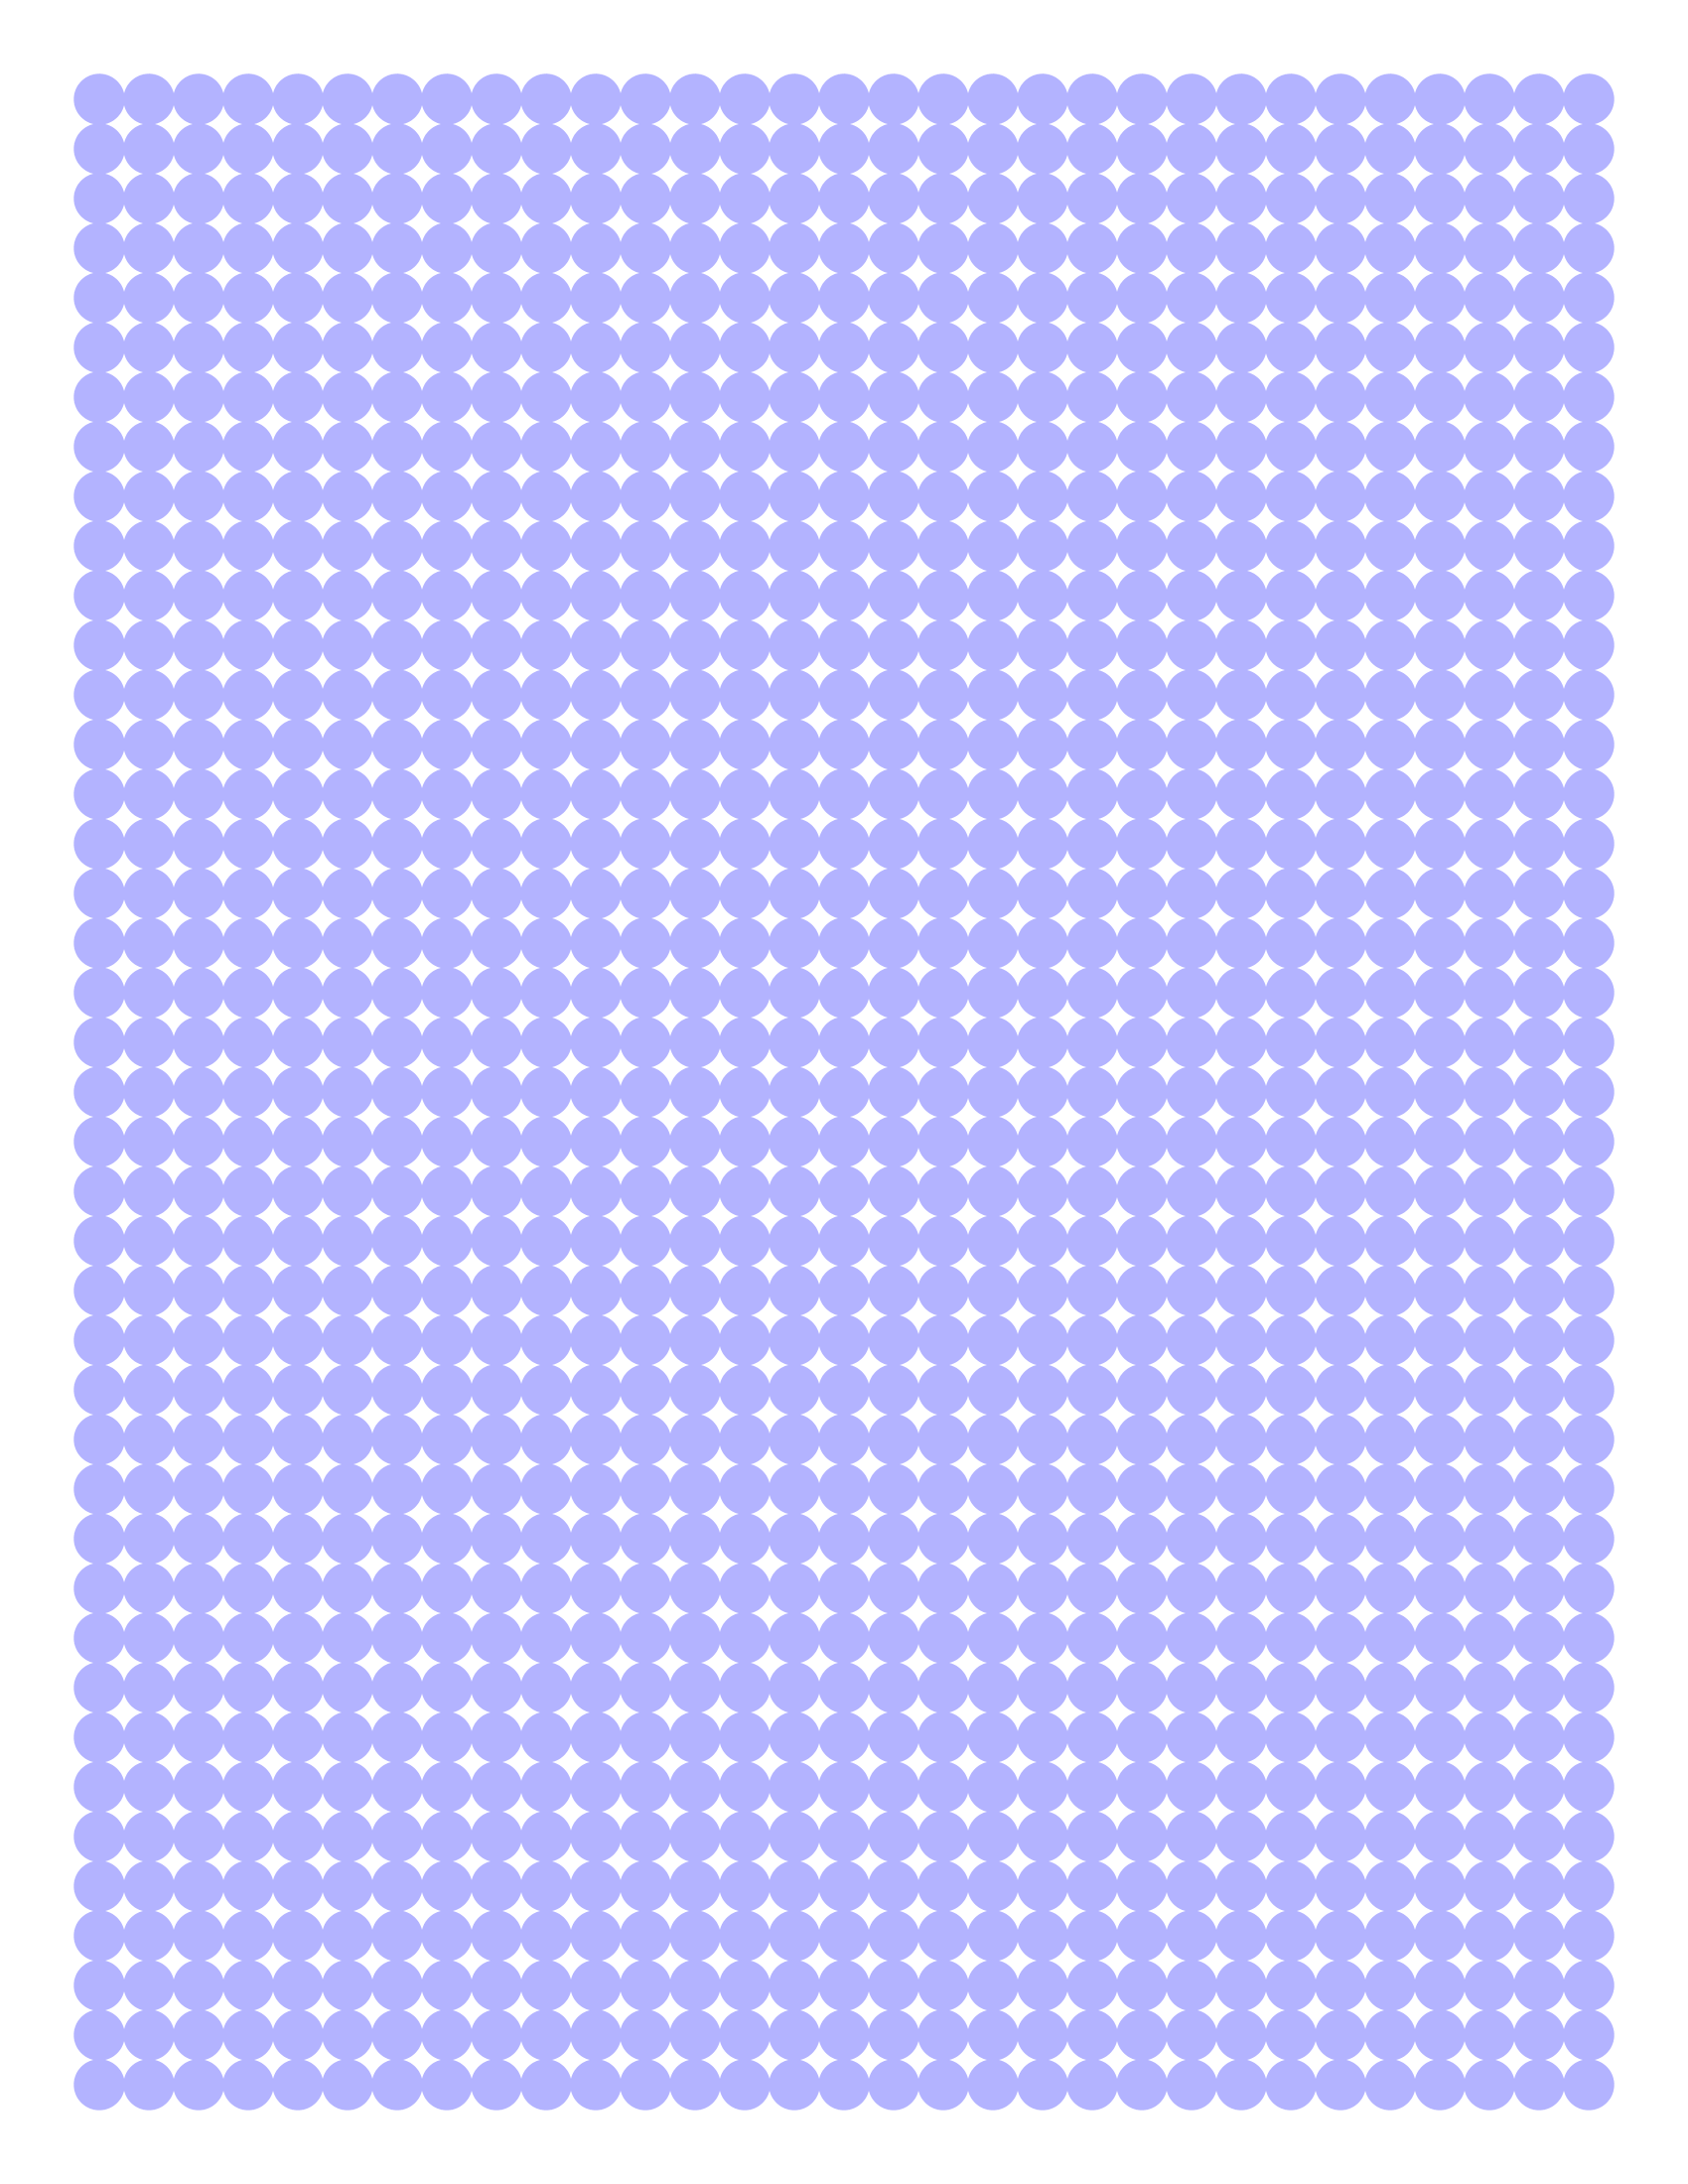 free online graph paper square dots